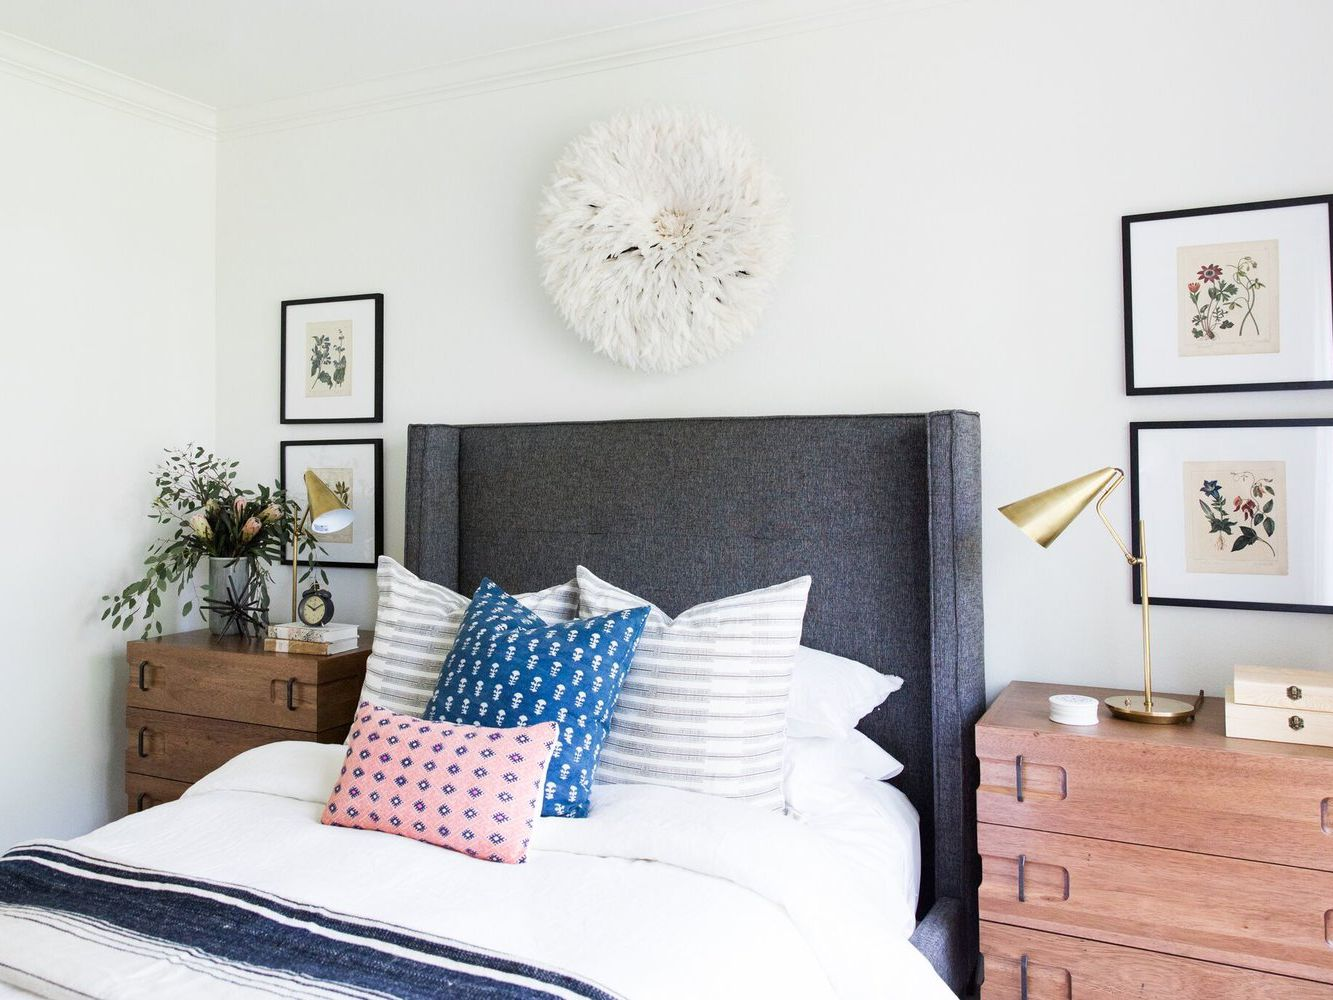 13 Stylish Bedrooms With Chic Upholstered Headboards